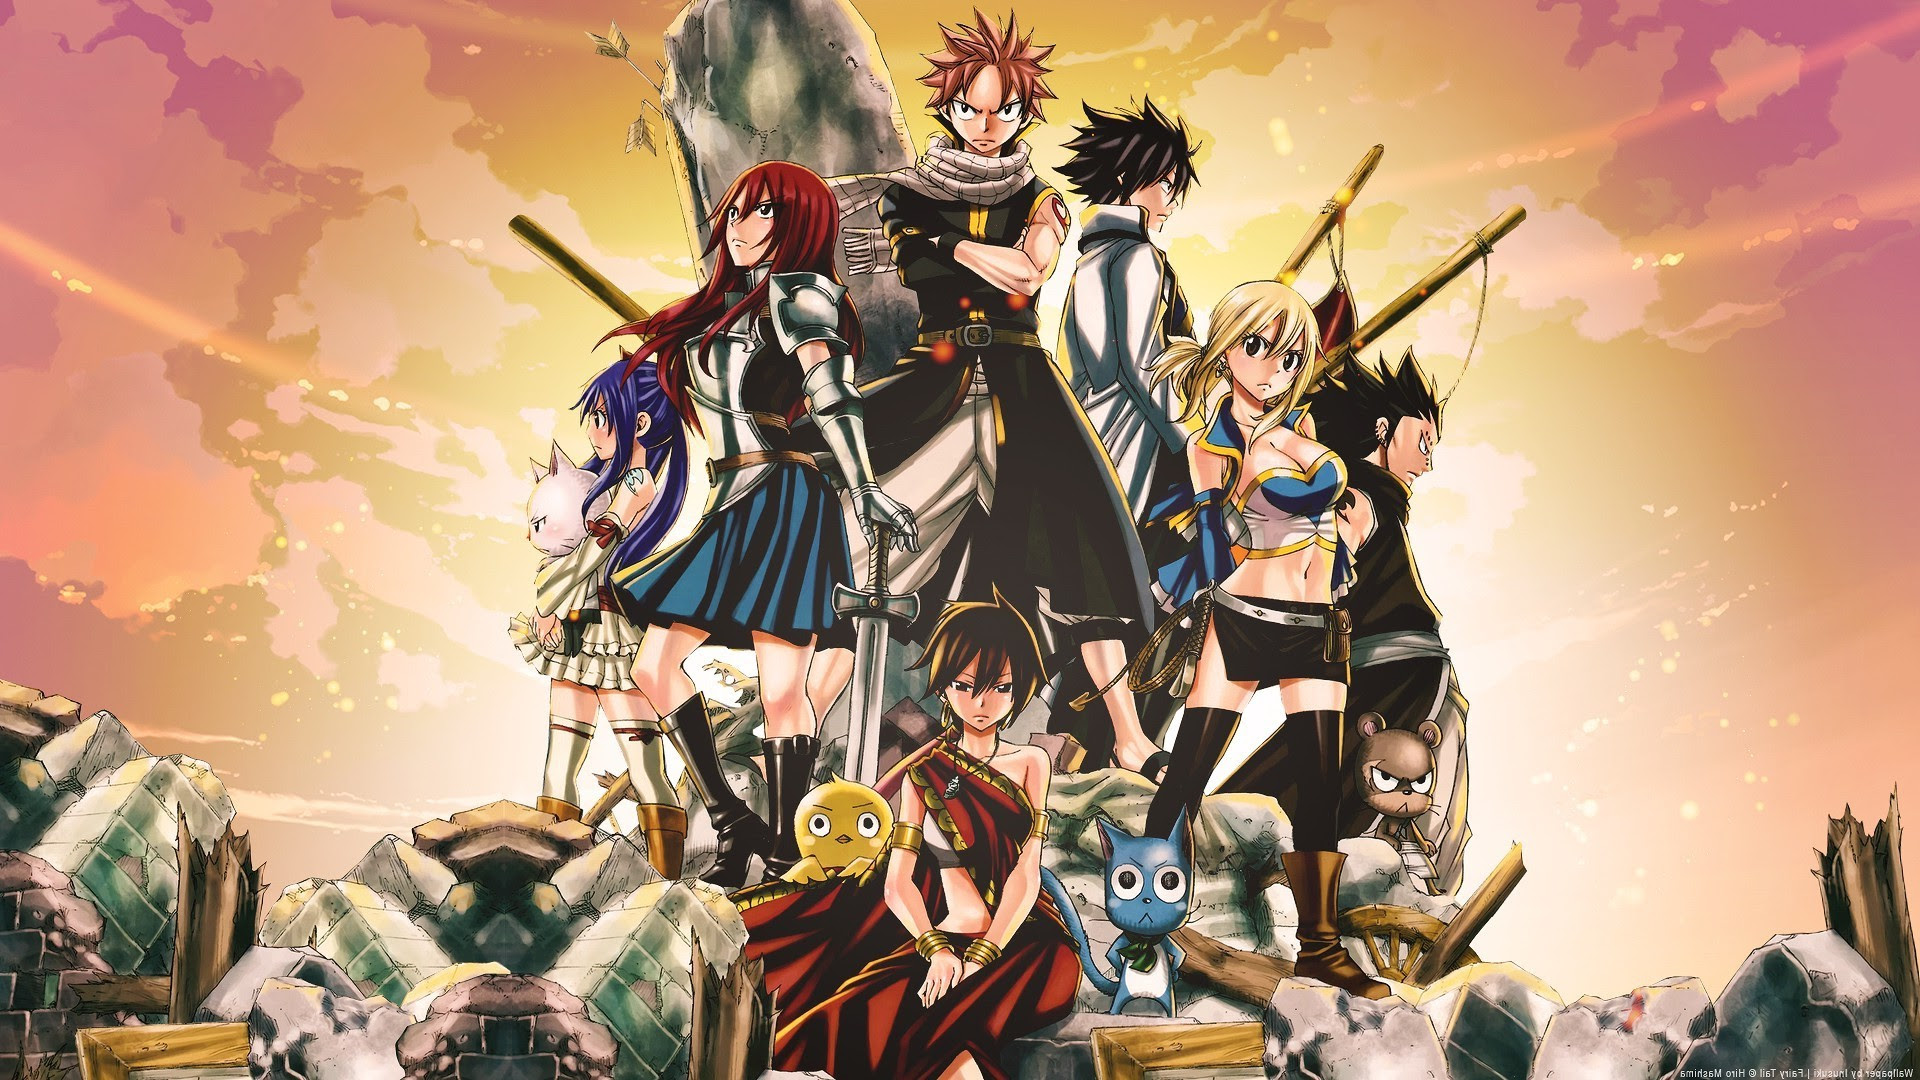 Fairy Tail Dragon Slayers Wallpaper 71 Images